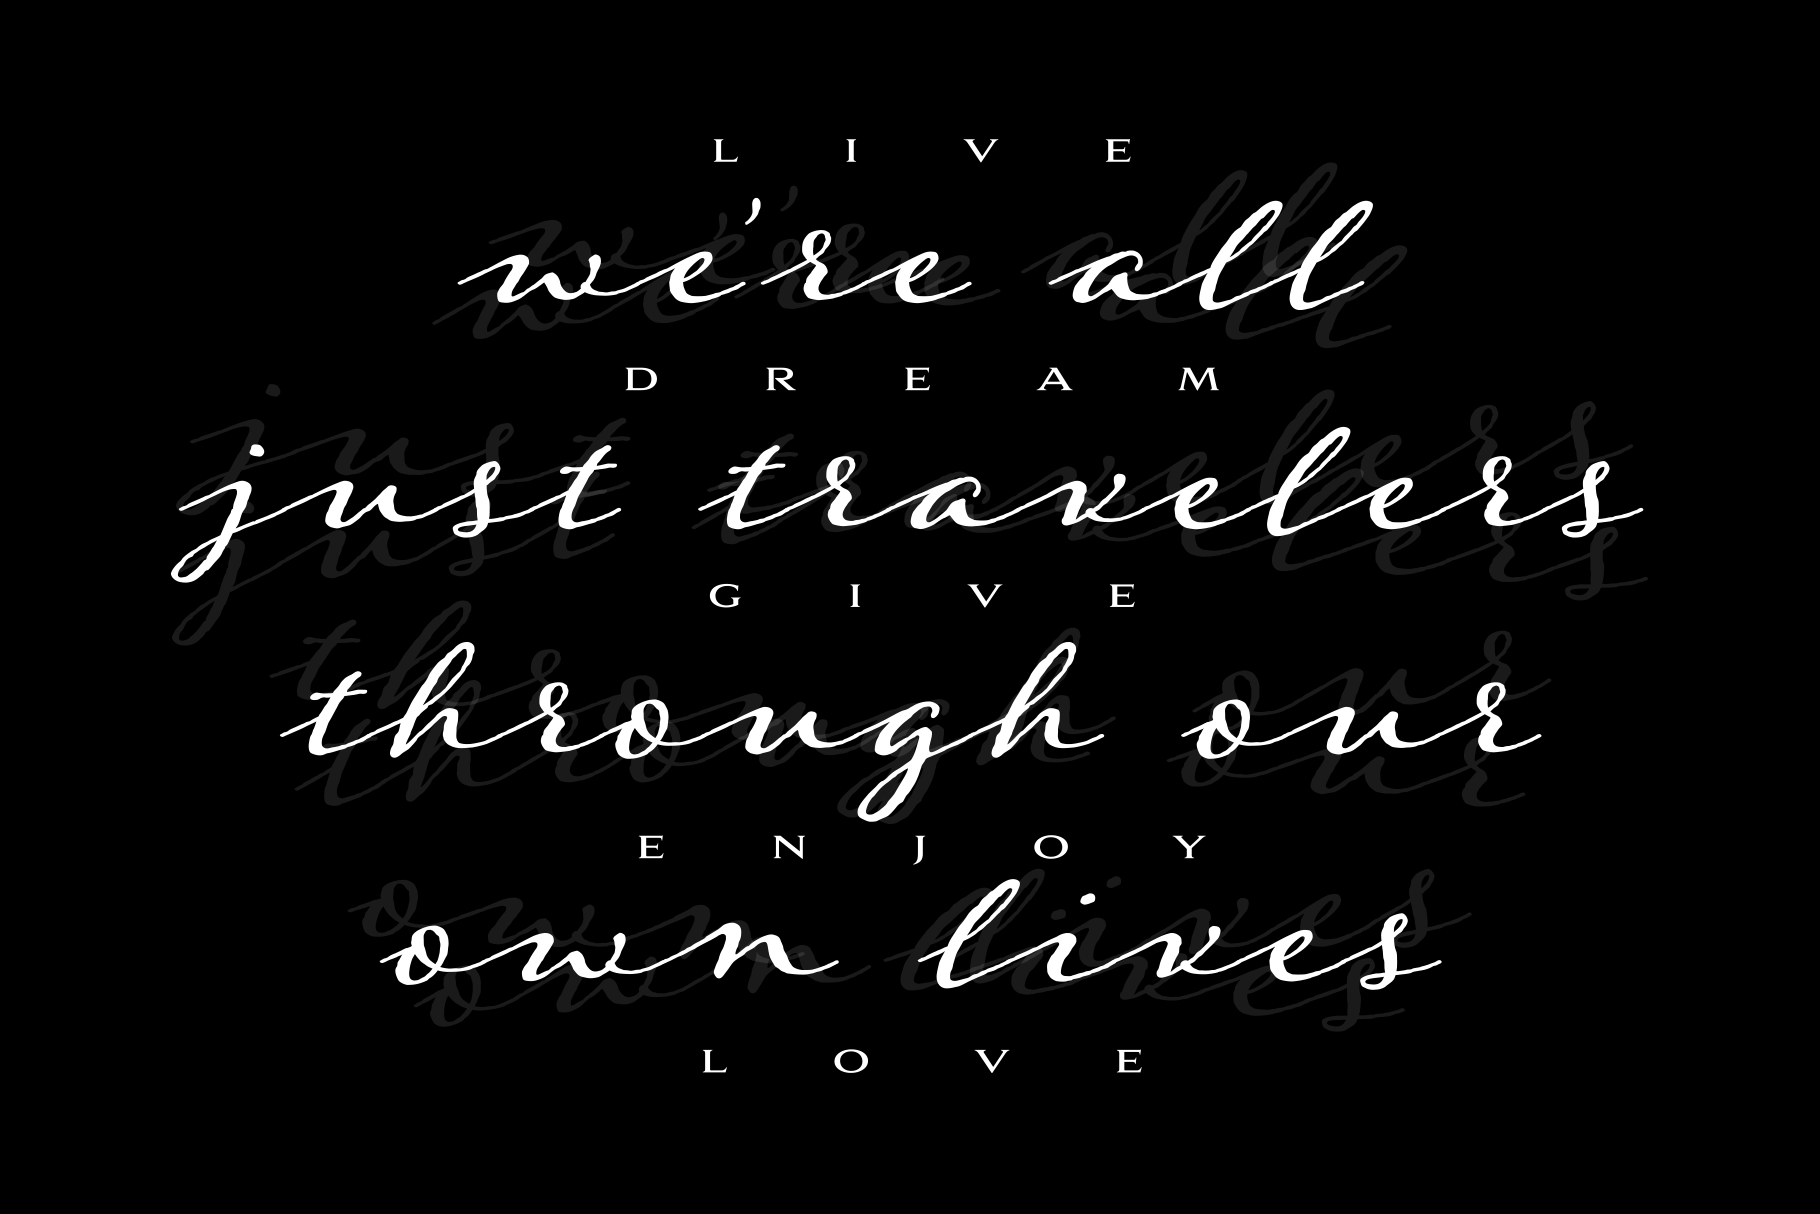 Were all just travelers quote design example image 4